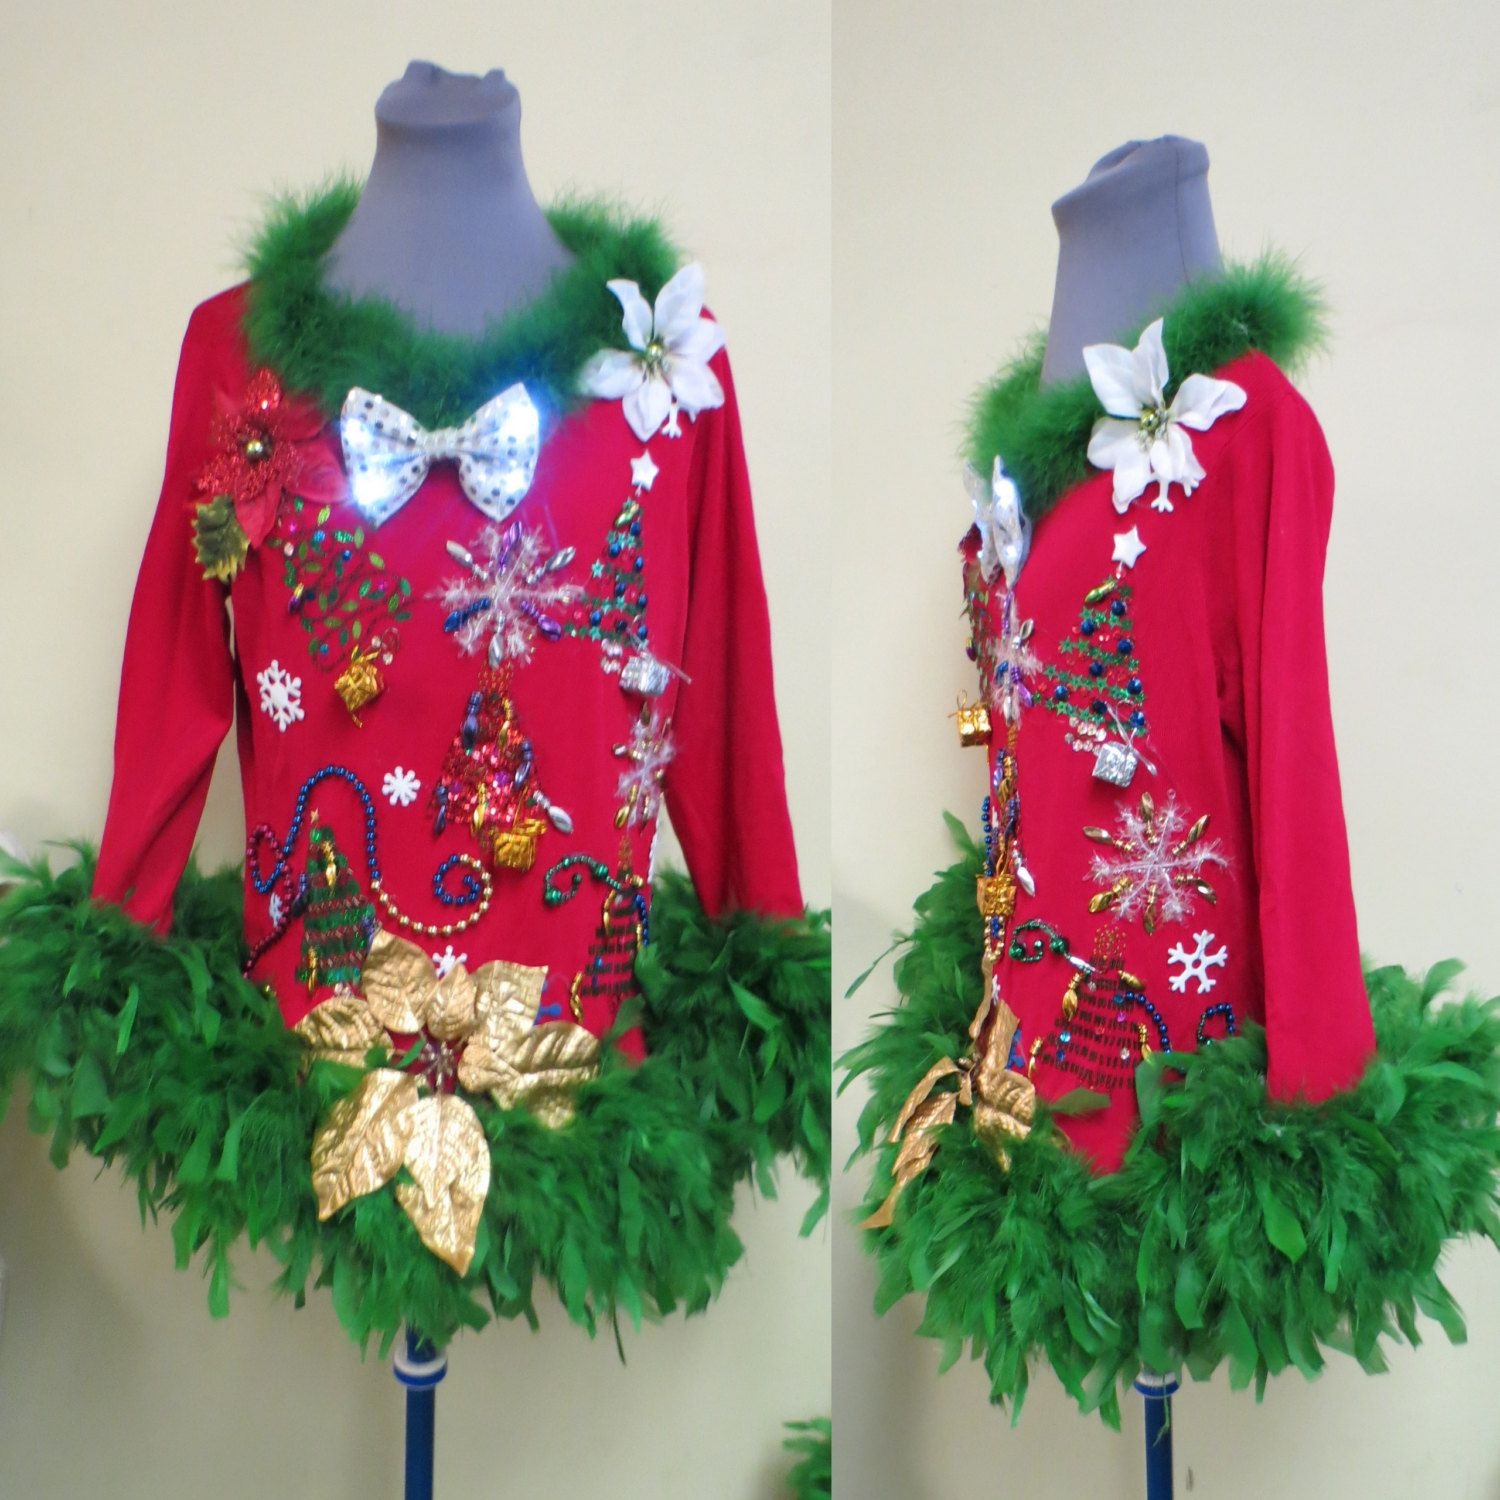 Bedazzled Glam Red Tacky Ugly Christmas Sweater Beaded Trees, Light